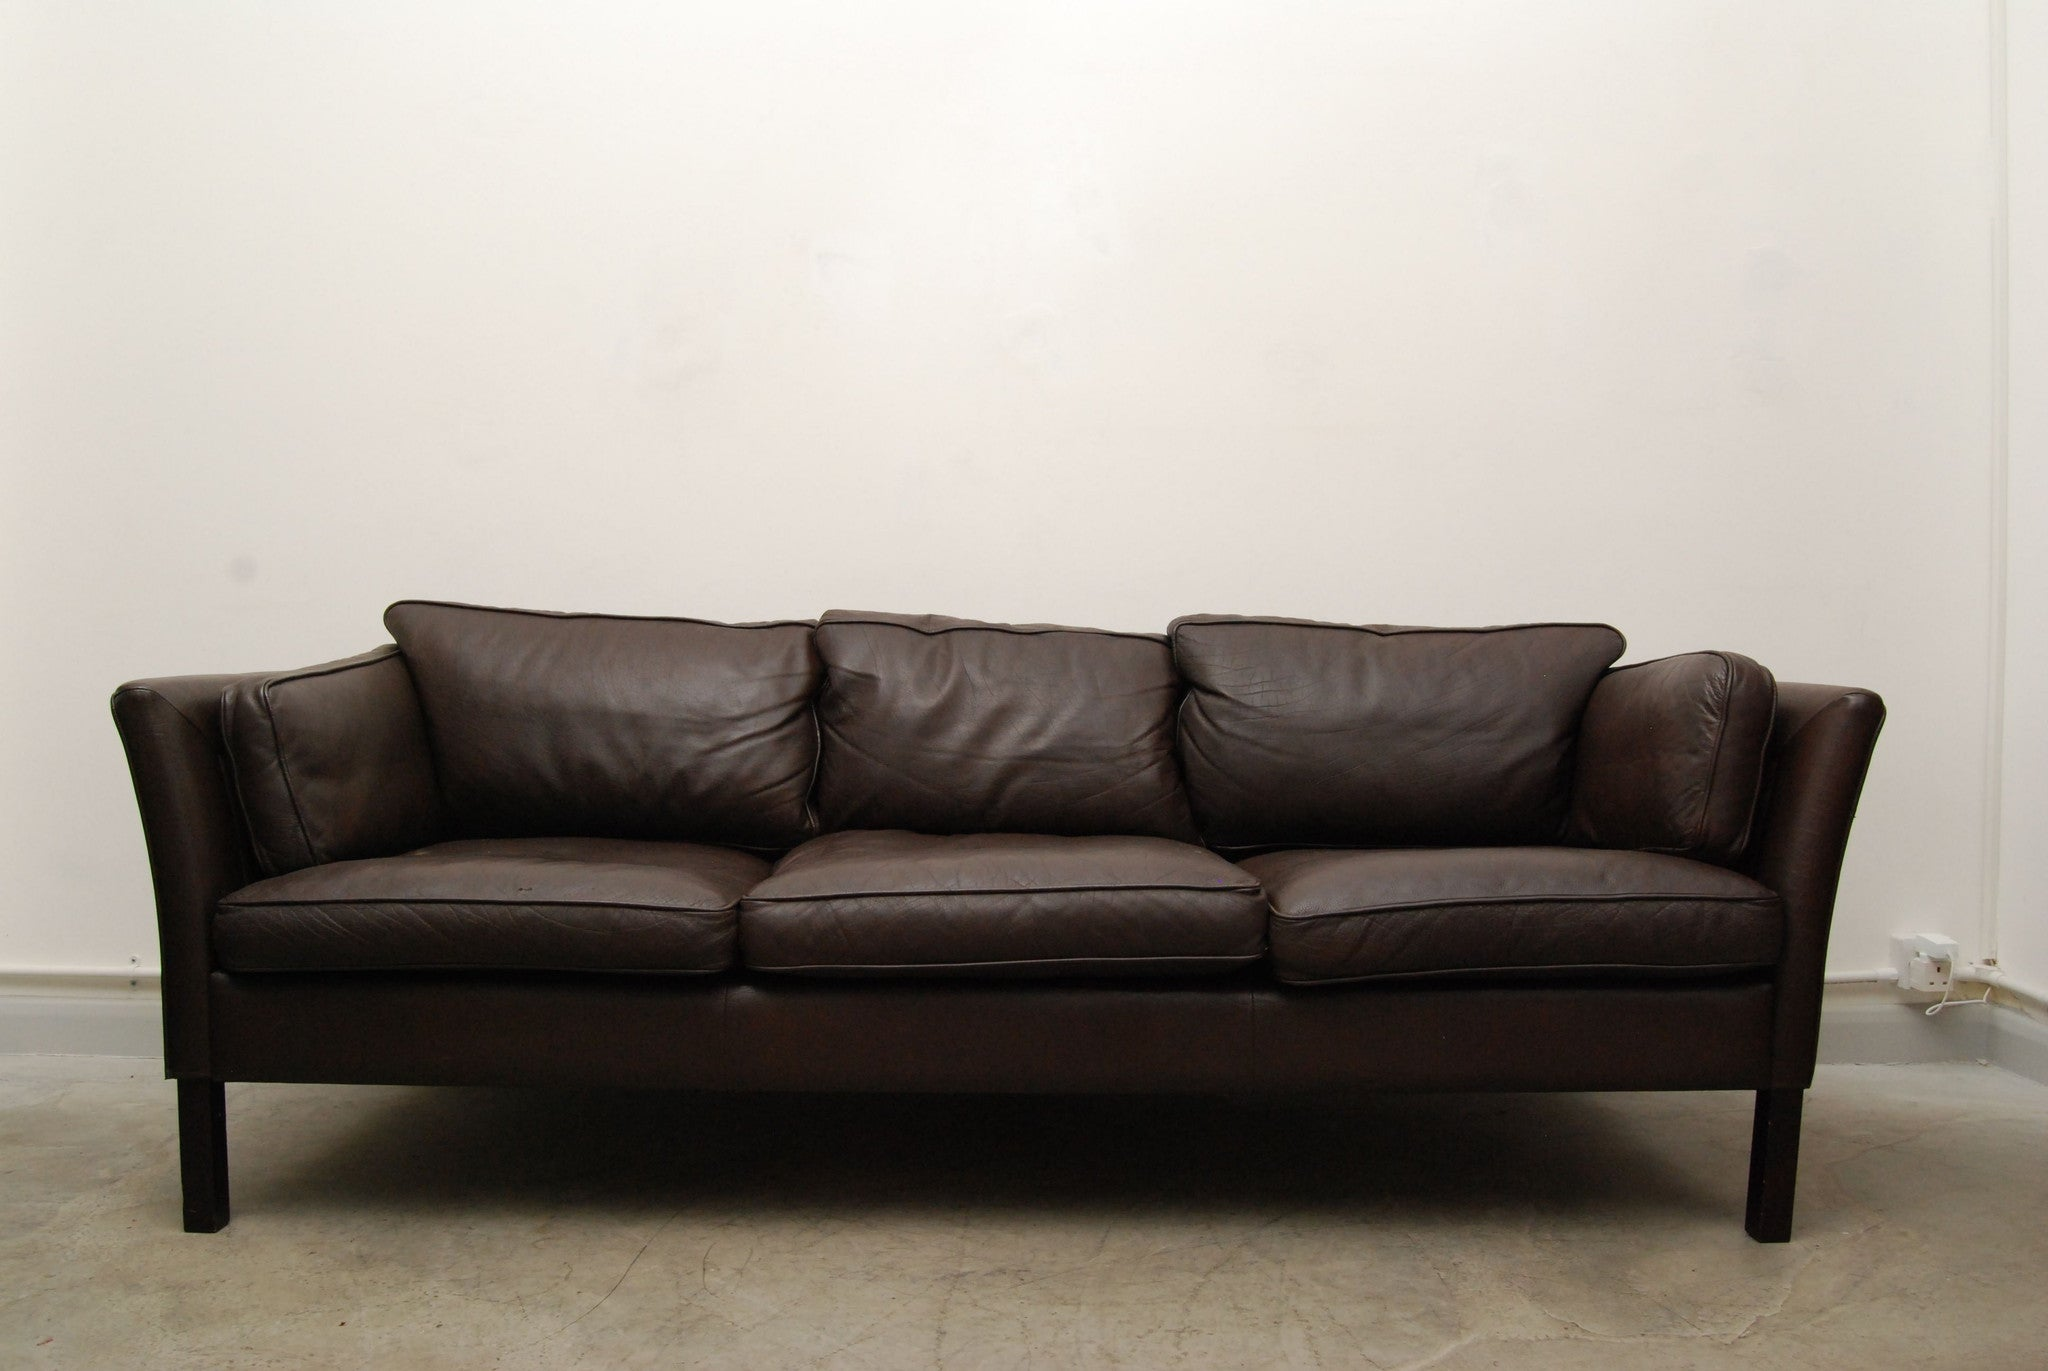 Three seat sofa by Stouby (dark brown)